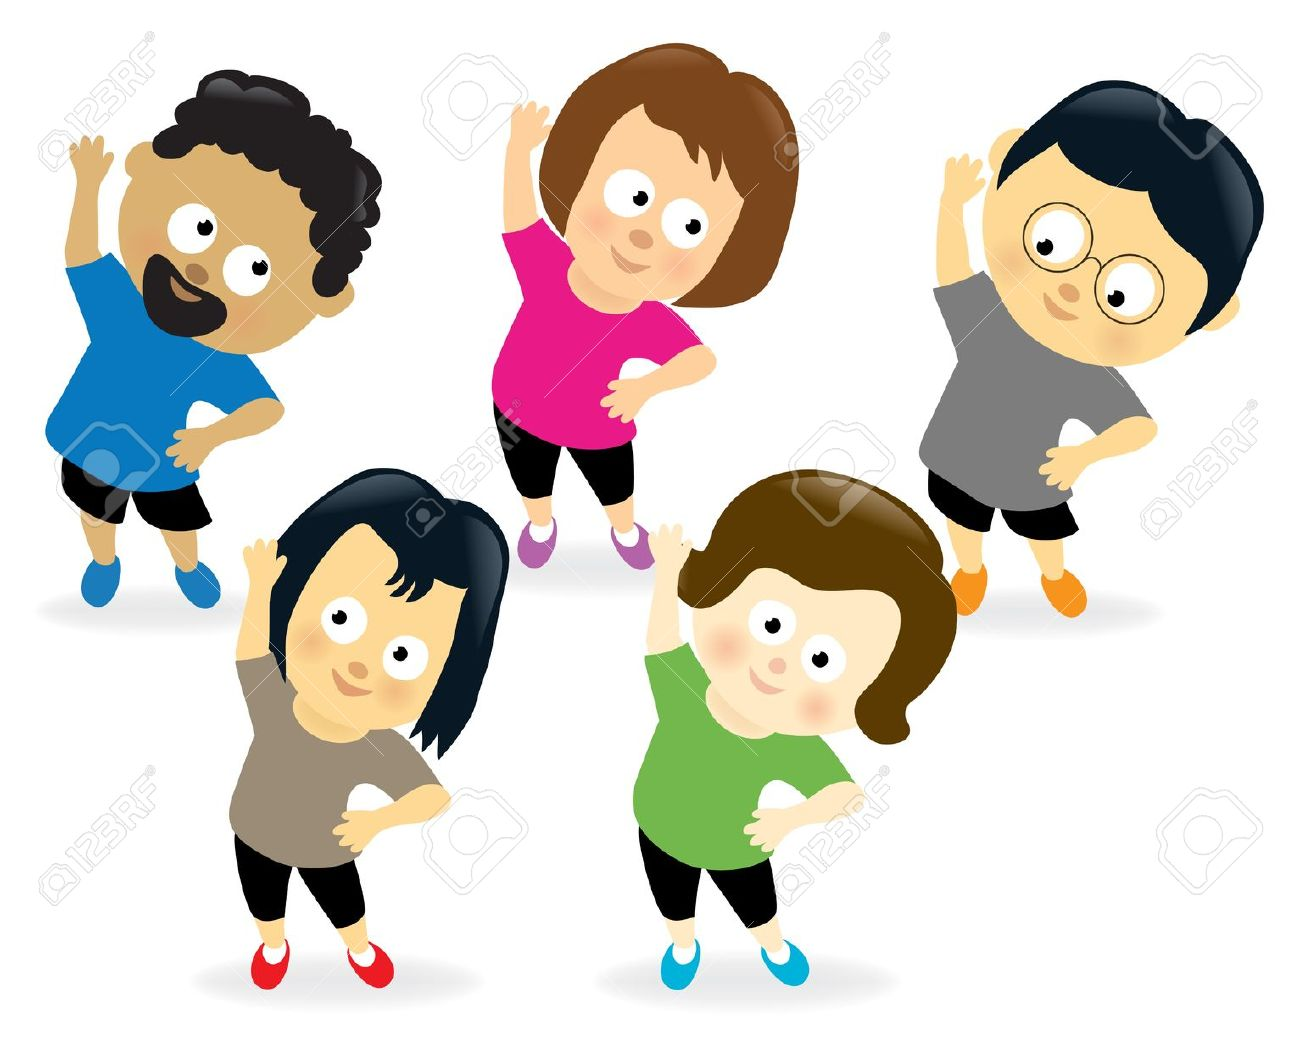 black and white download Exercising free download best. Kids working out clipart